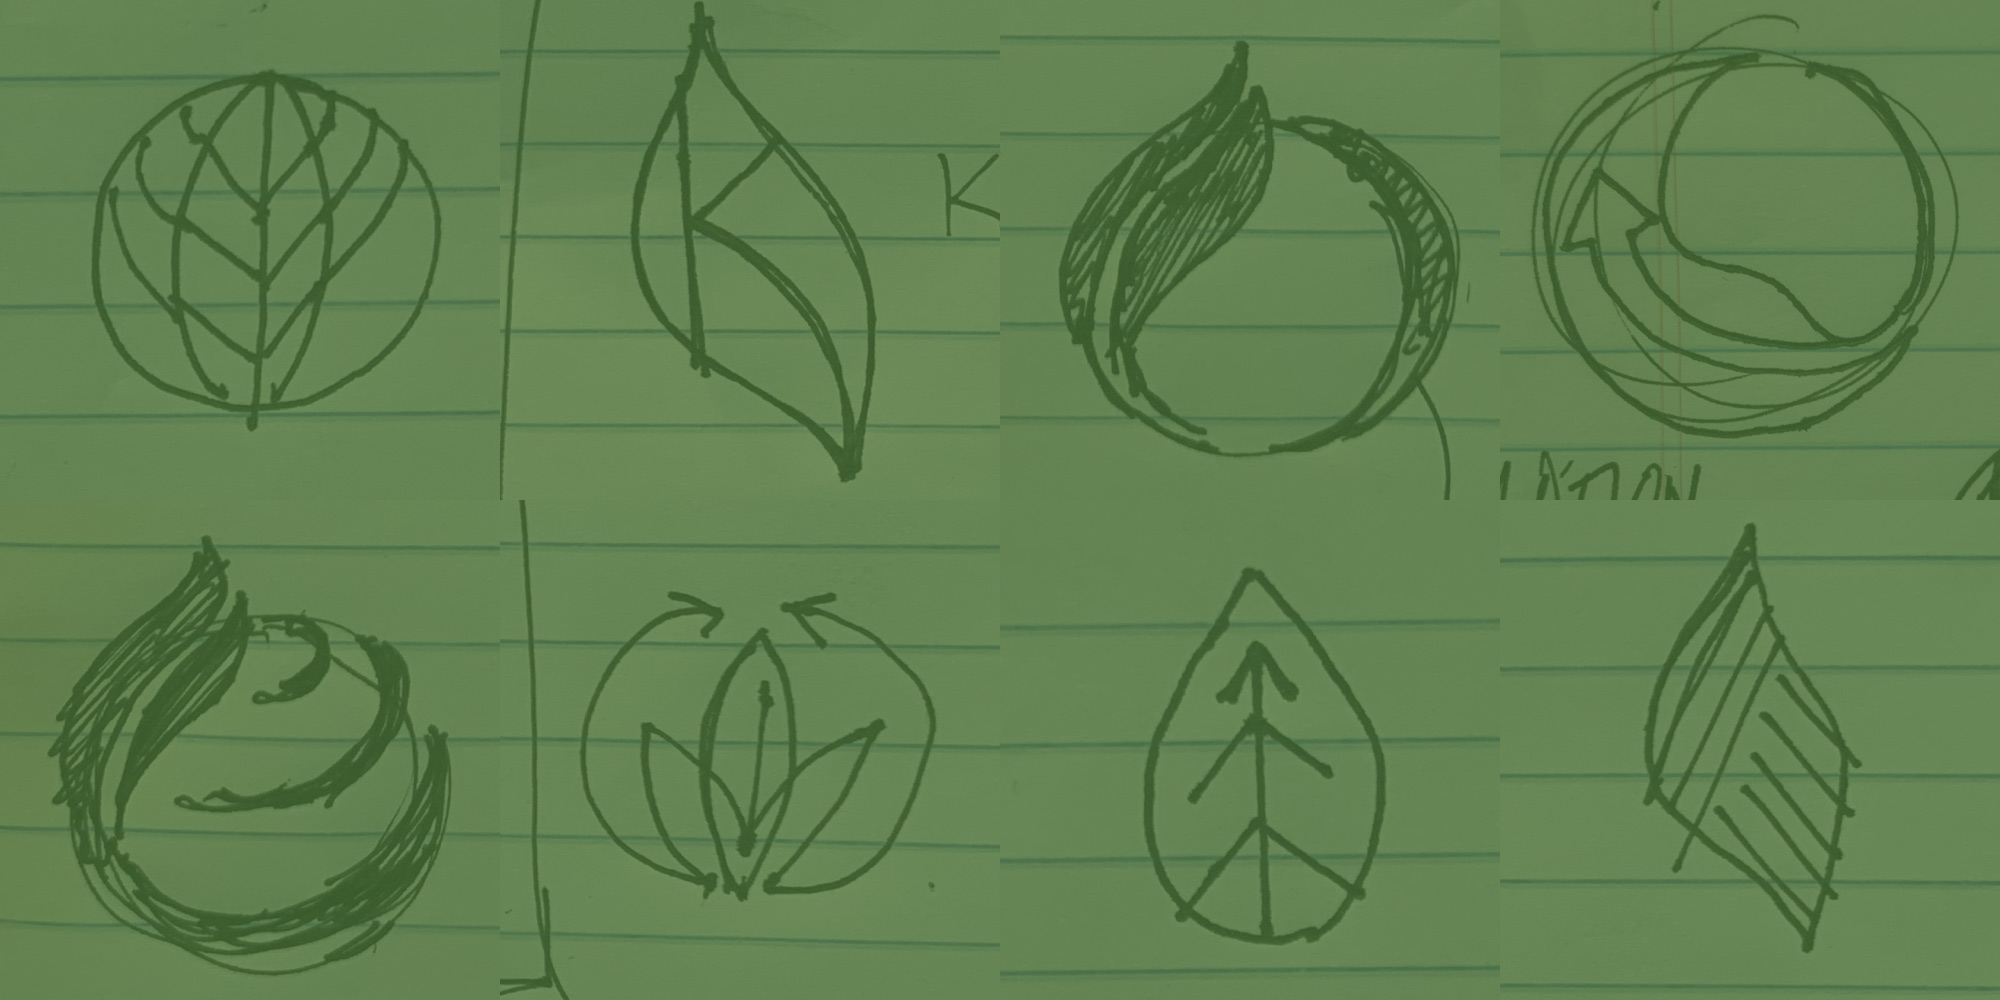 FCG_KW_Sketches